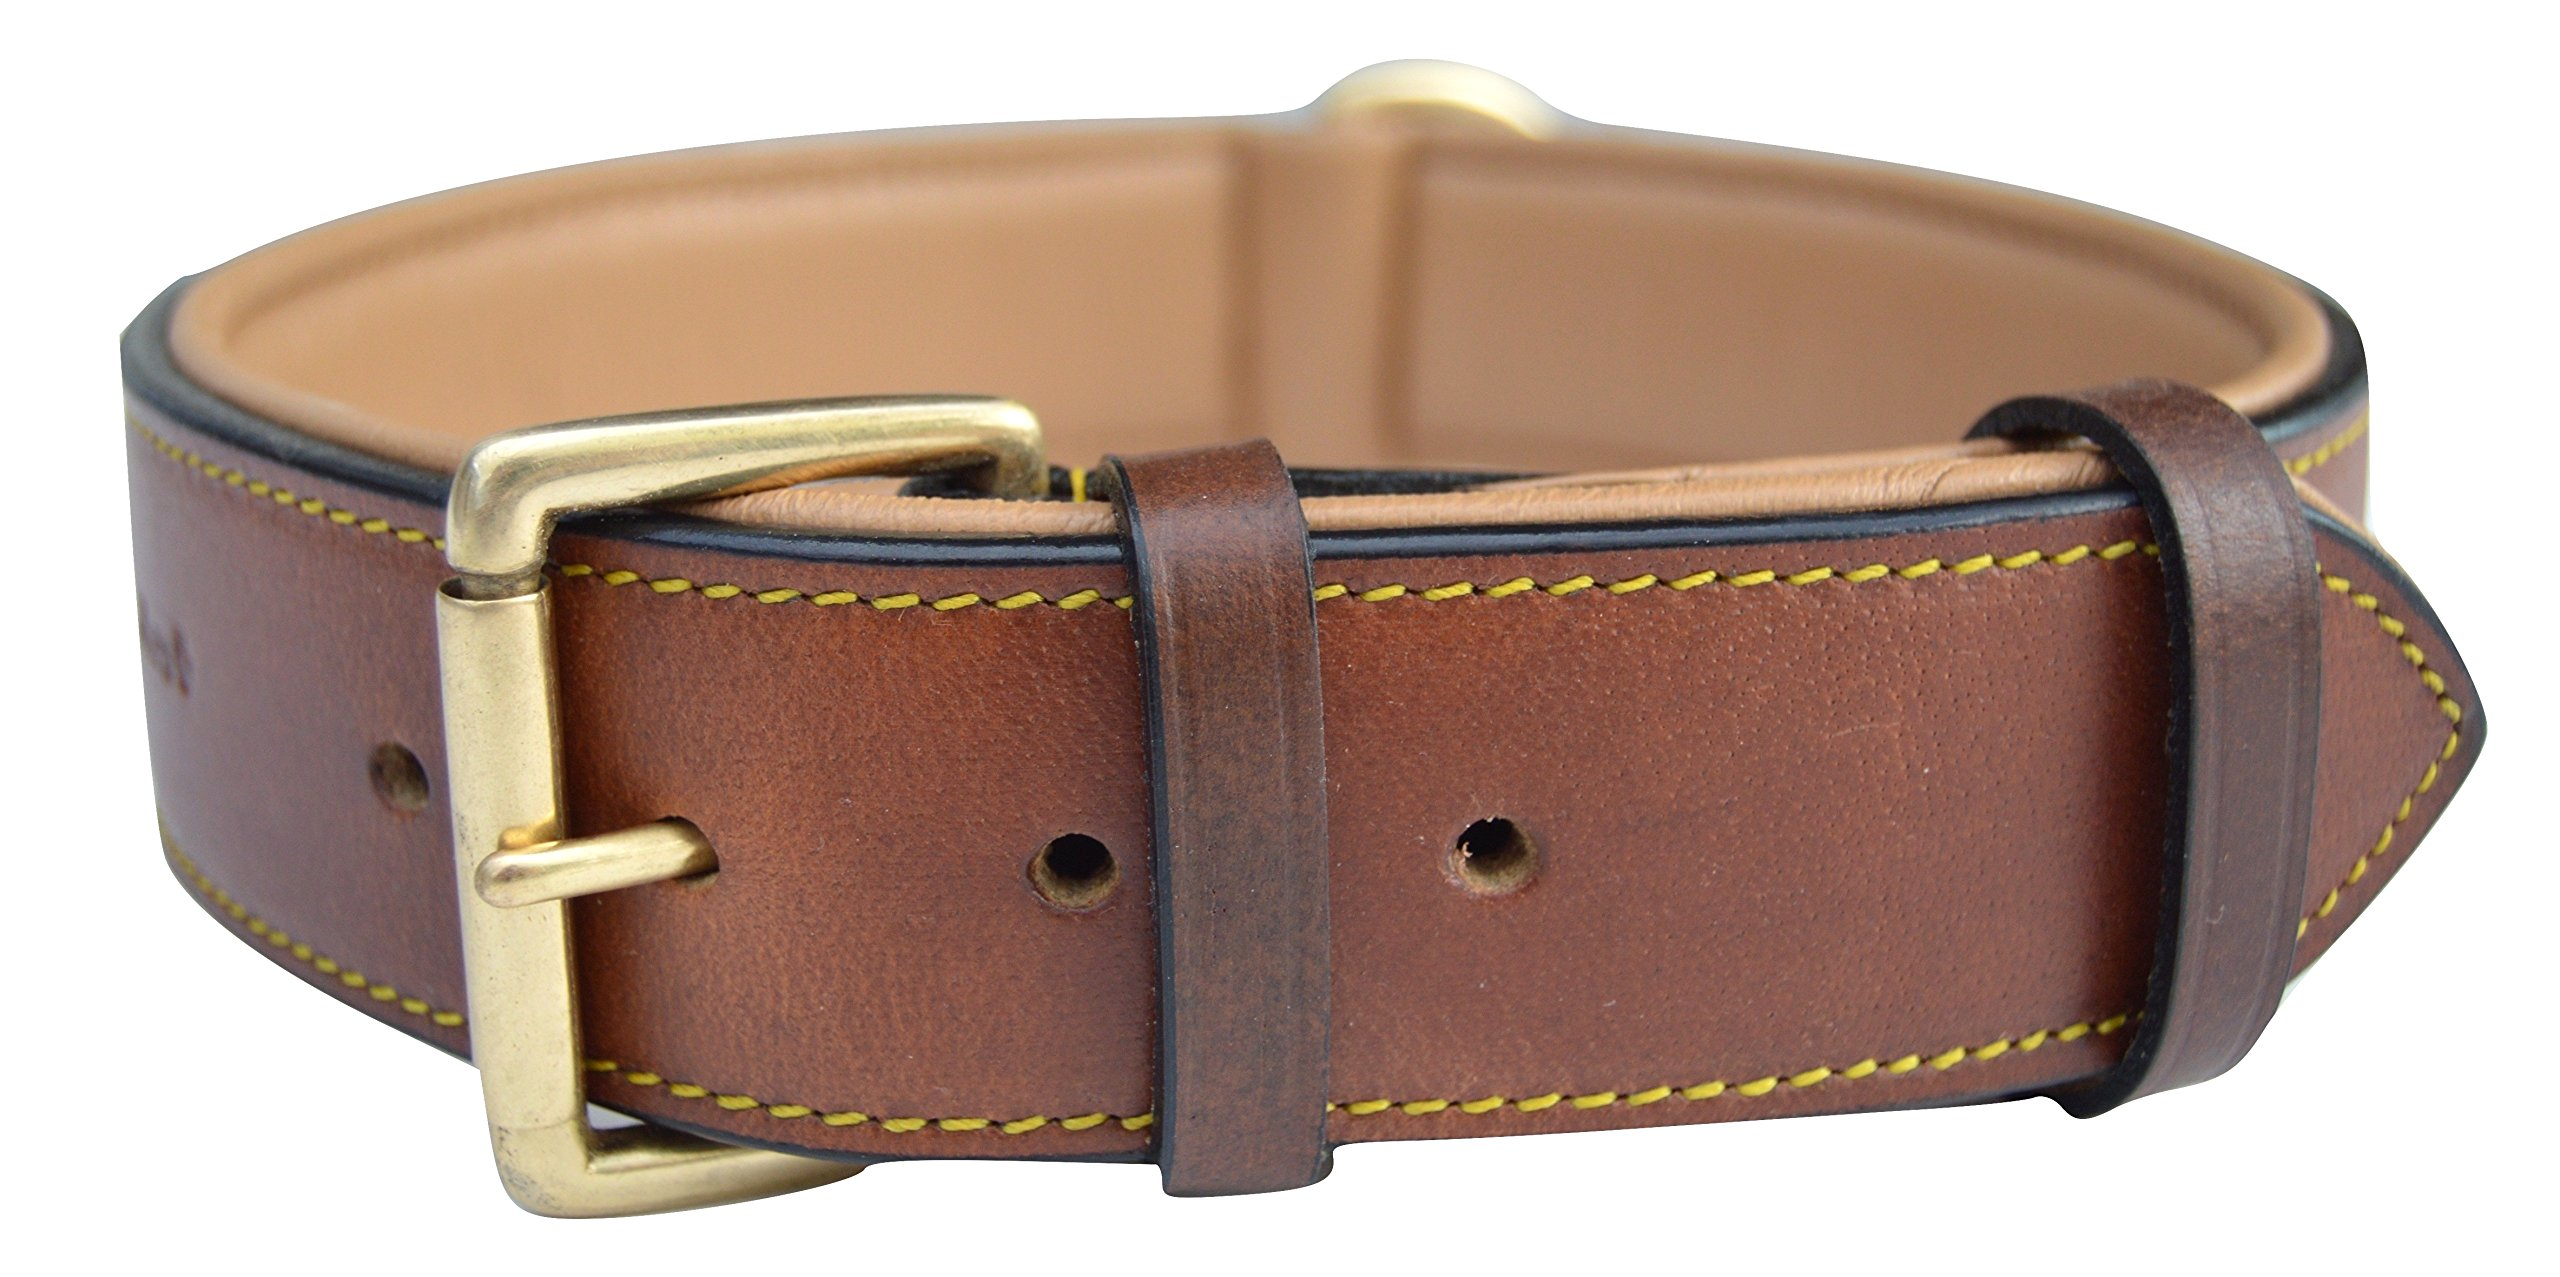 Soft Touch Collars Real Leather Padded Dog Collar, XL Brown, 28'' Inches Long x 1.75'' Inches Wide, Neck Size 22'' to 25'', Full Grain Genuine Luxury Leather for XLarge Dogs by Soft Touch Collars